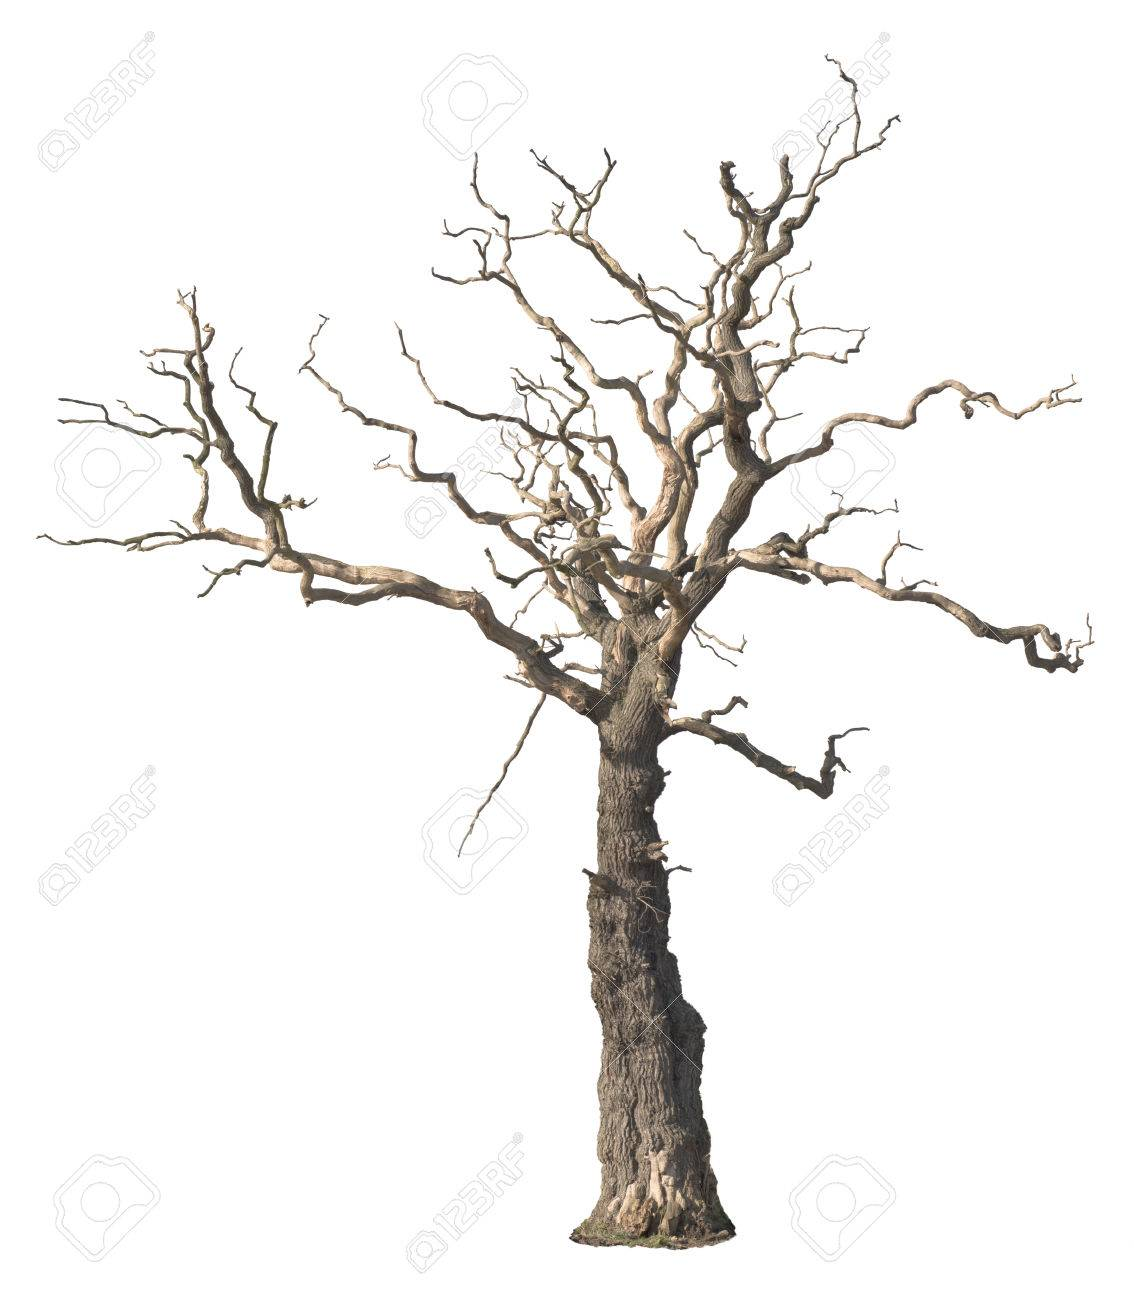 Dead tree isolated on white background - 54520254